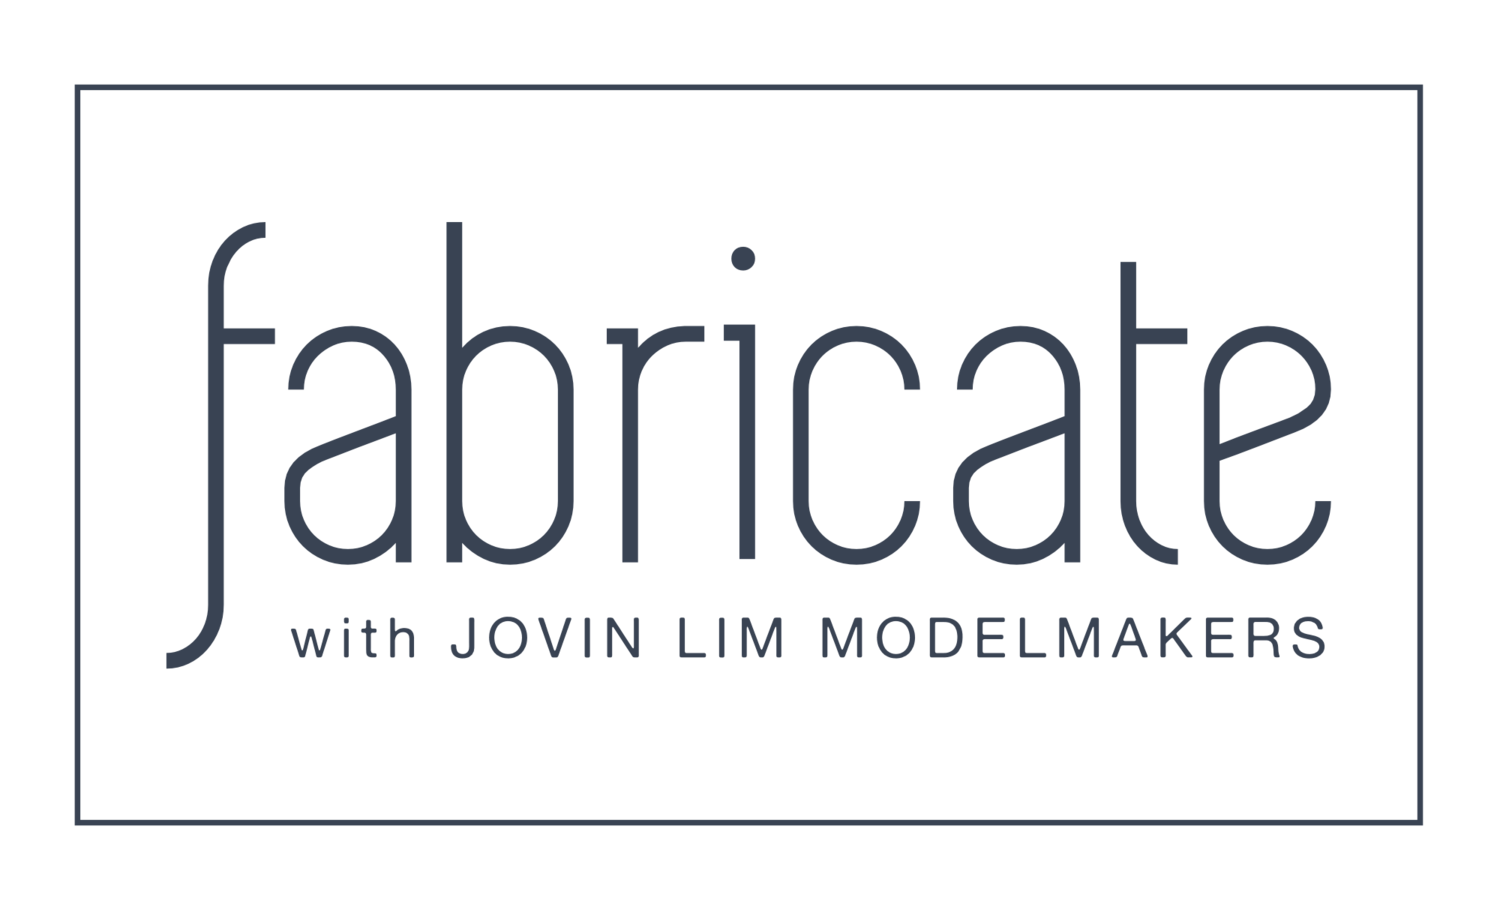 Fabricate with Jovin Lim Modelmakers